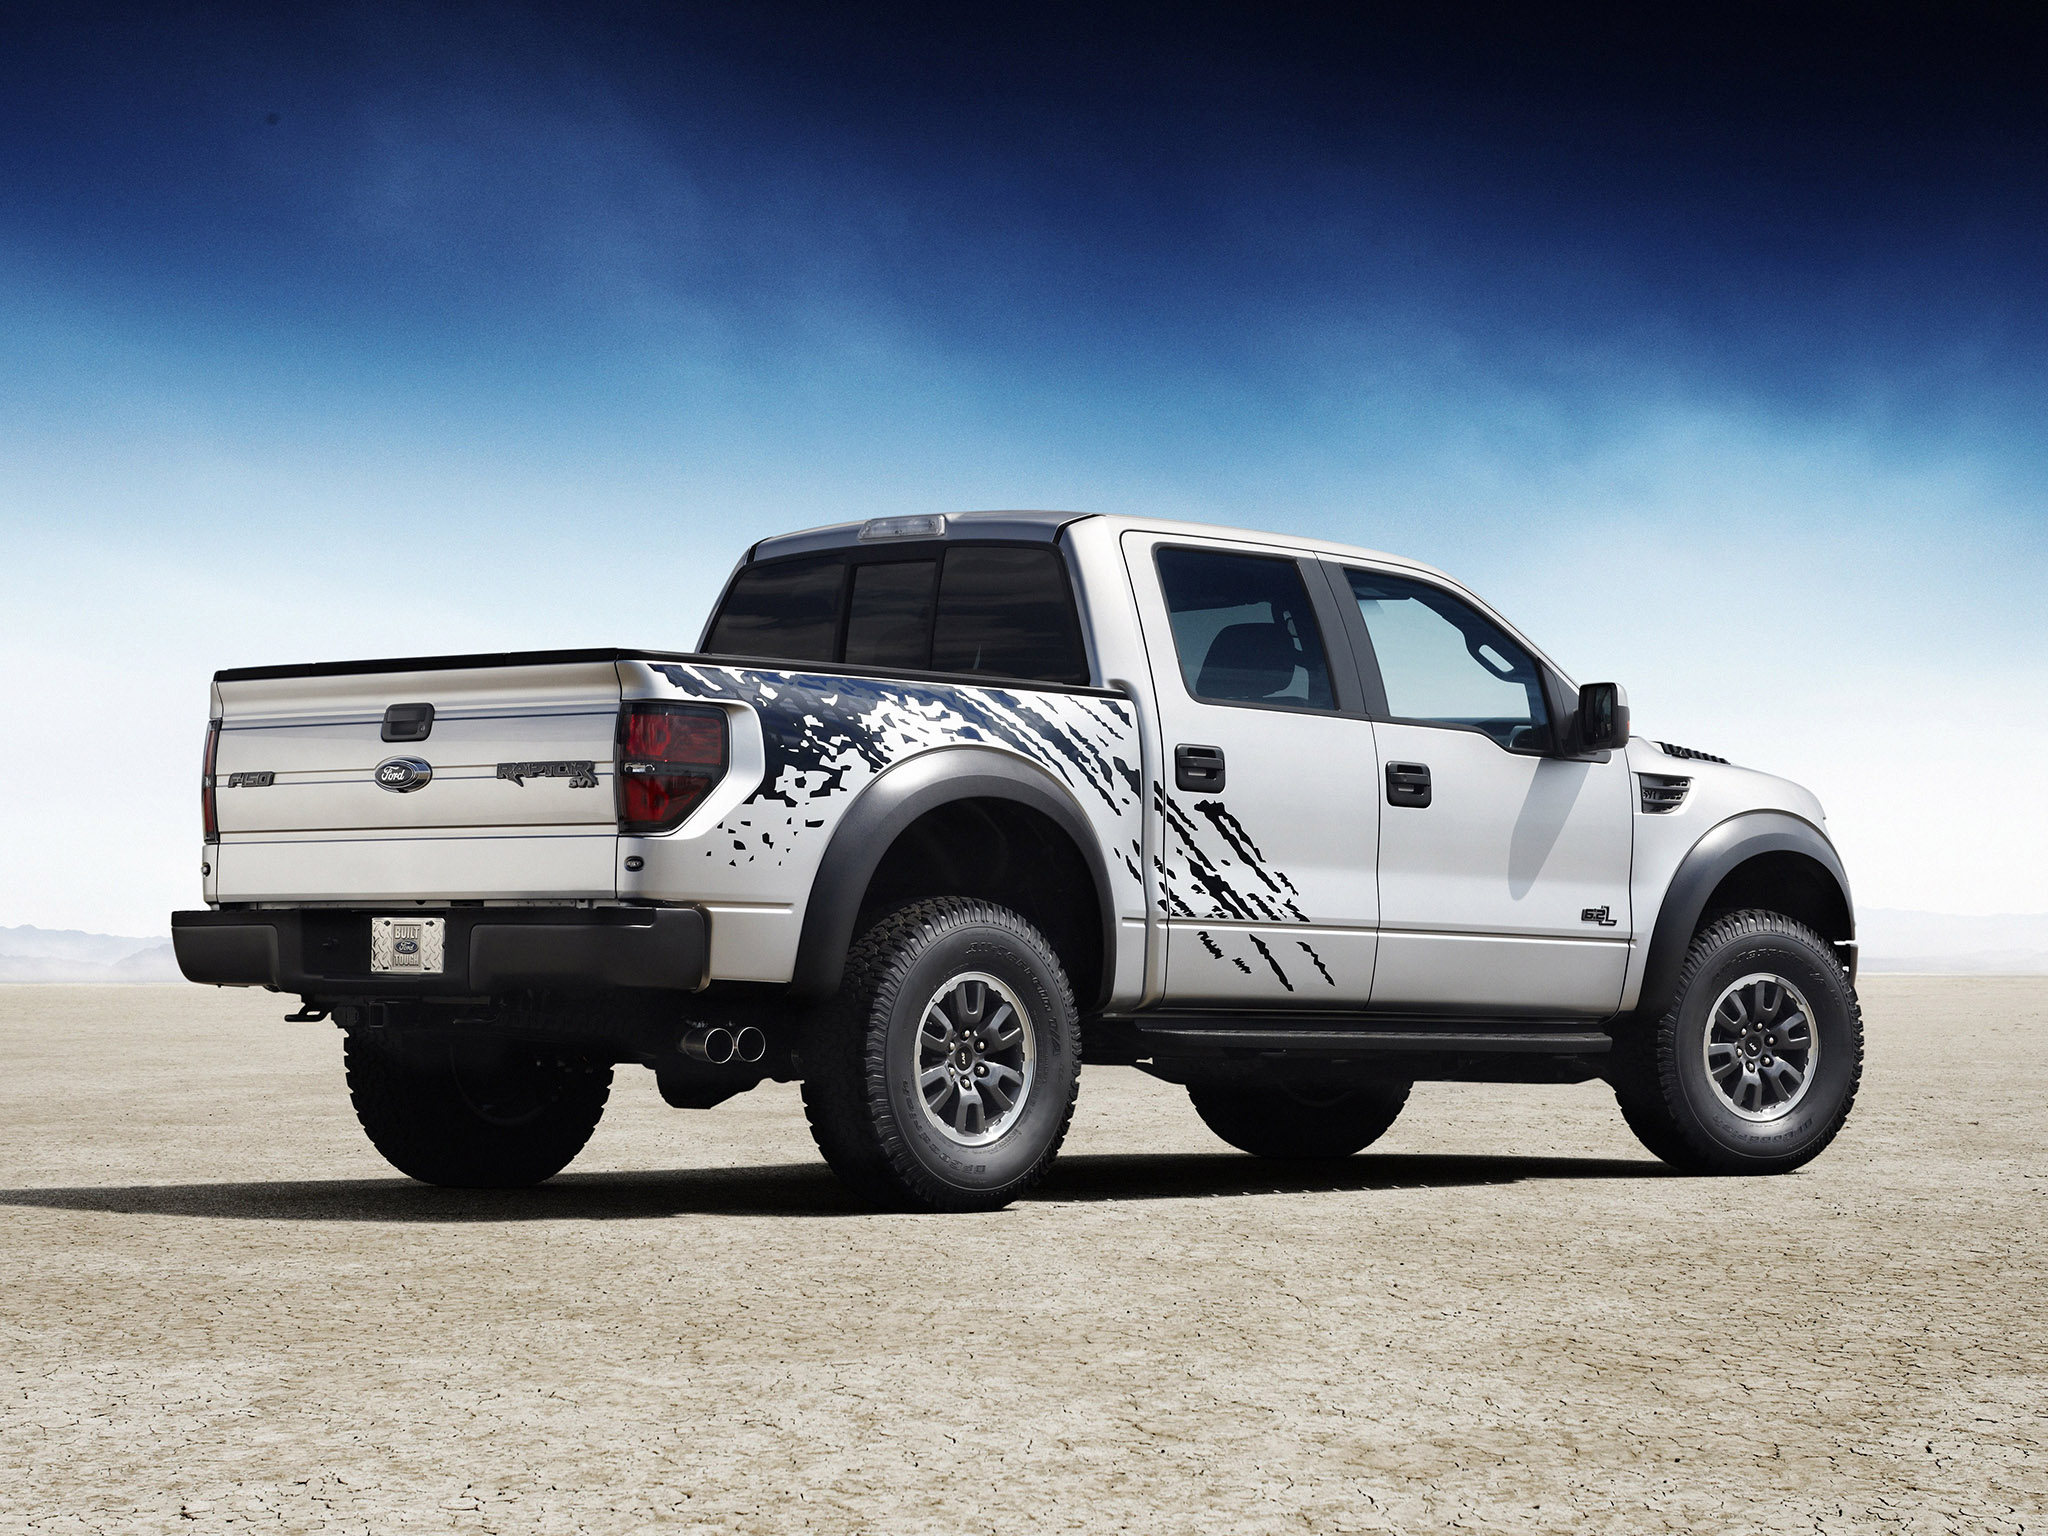 2012 ford f 150 svt raptor supercrew truck 4x4 f wallpaper 2048x1536 109803 wallpaperup. Black Bedroom Furniture Sets. Home Design Ideas